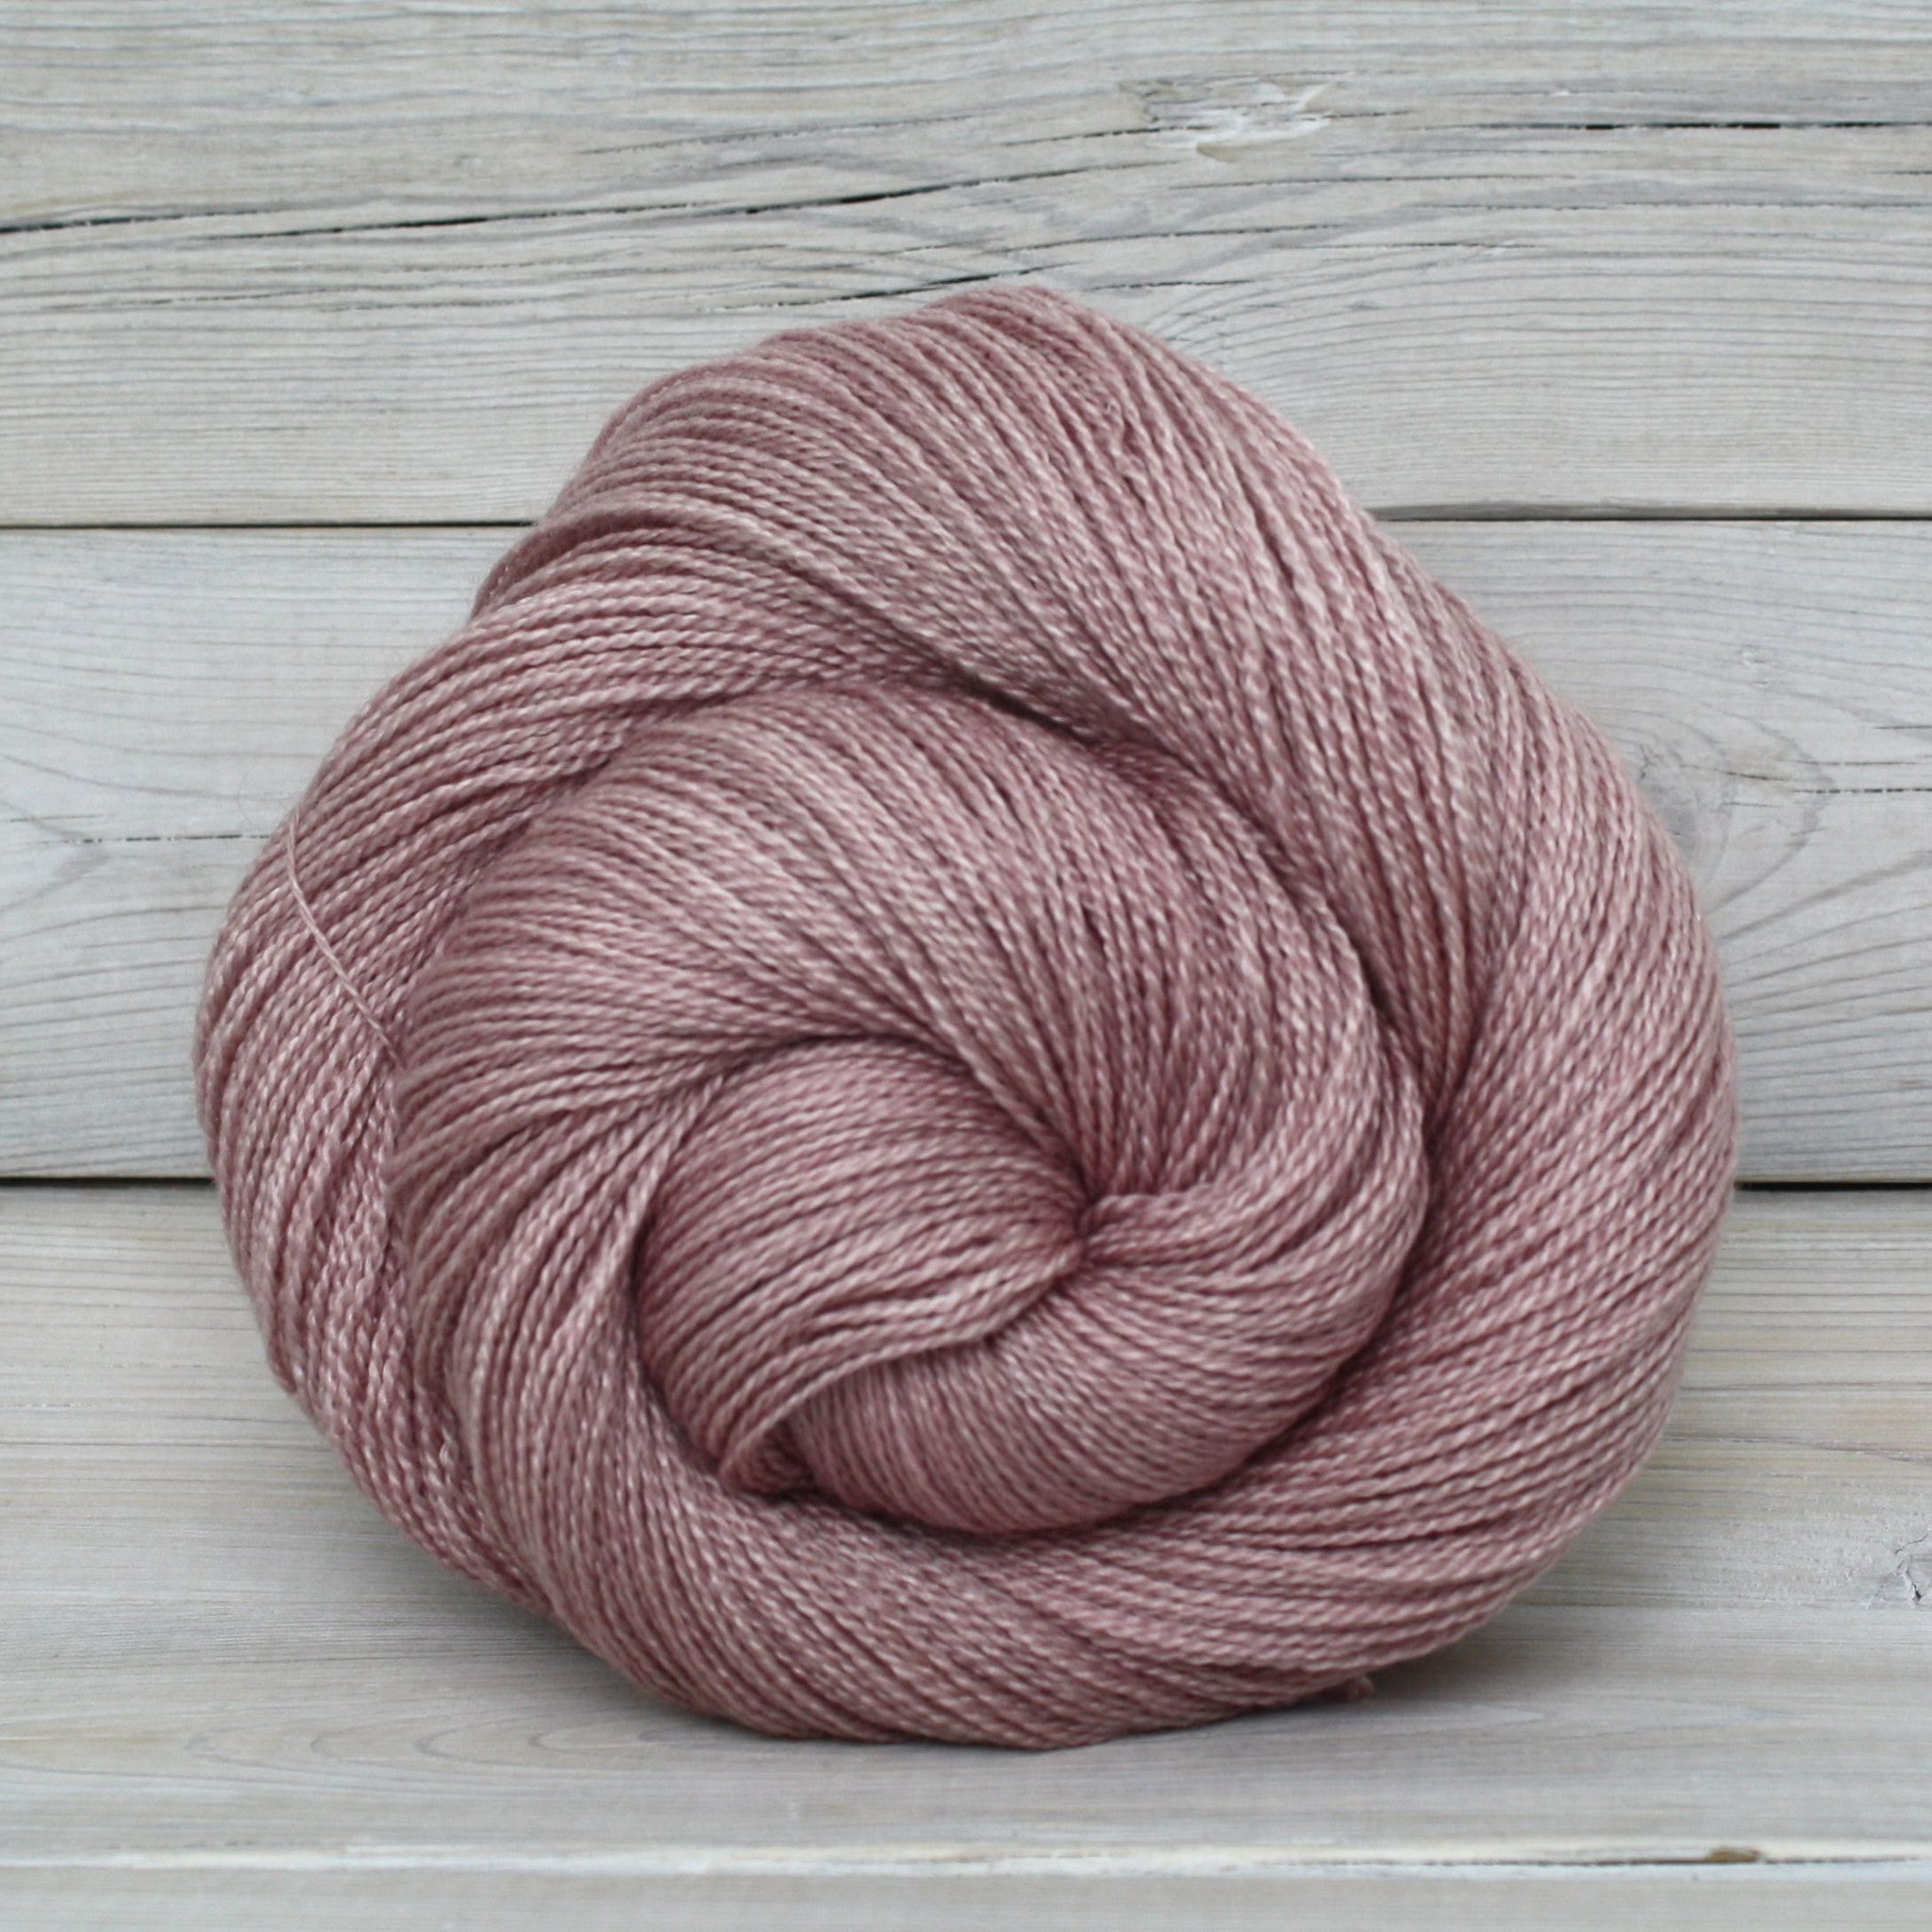 Luna Grey Fiber Arts Starbright Yarn | Colorway: Tea Rose